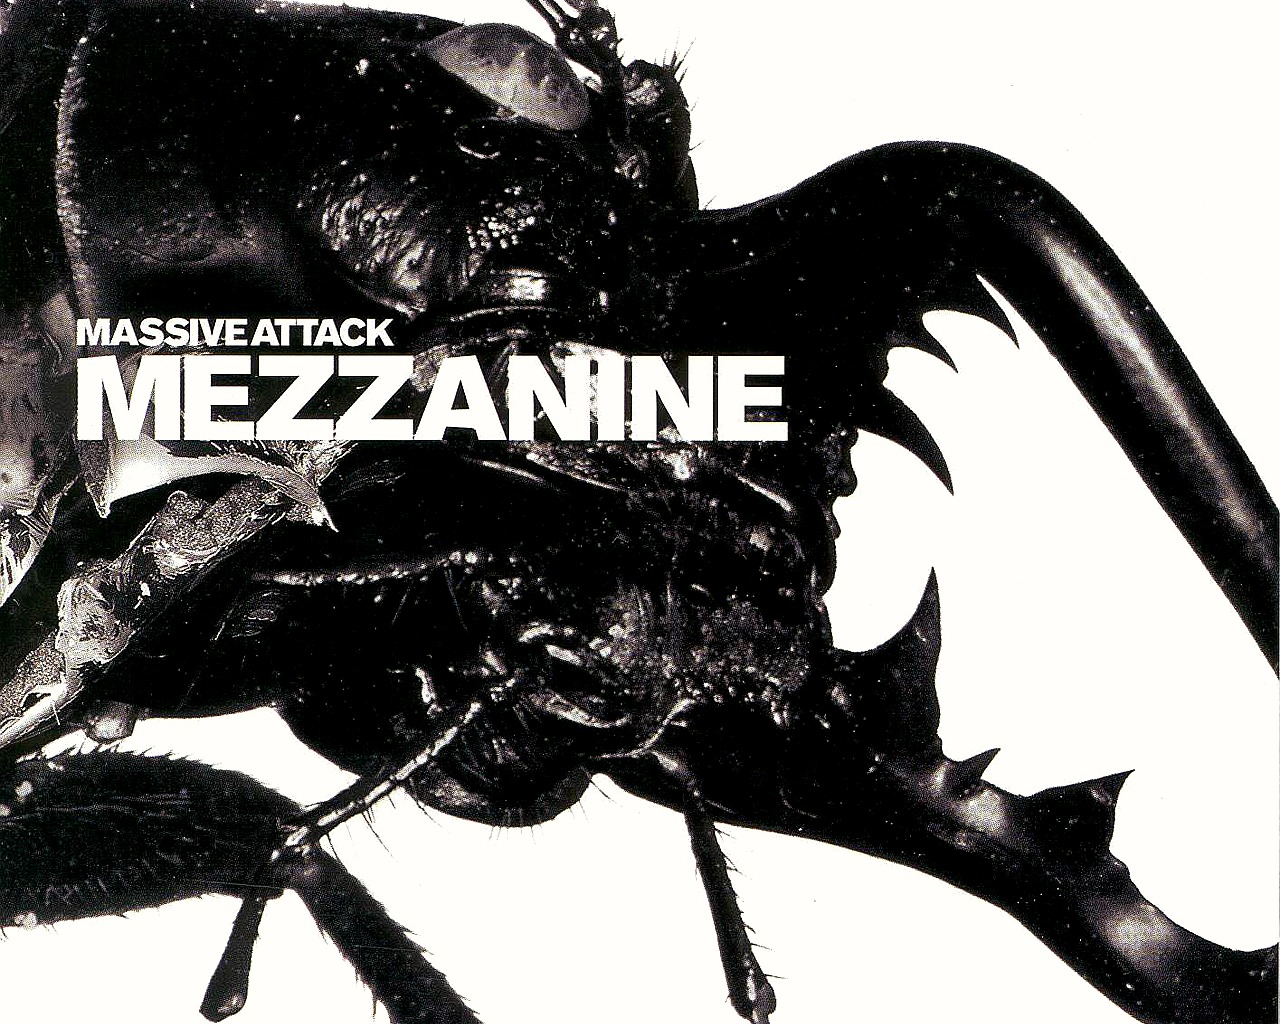 Massive-Attack-Mezzanine-Wallpaper